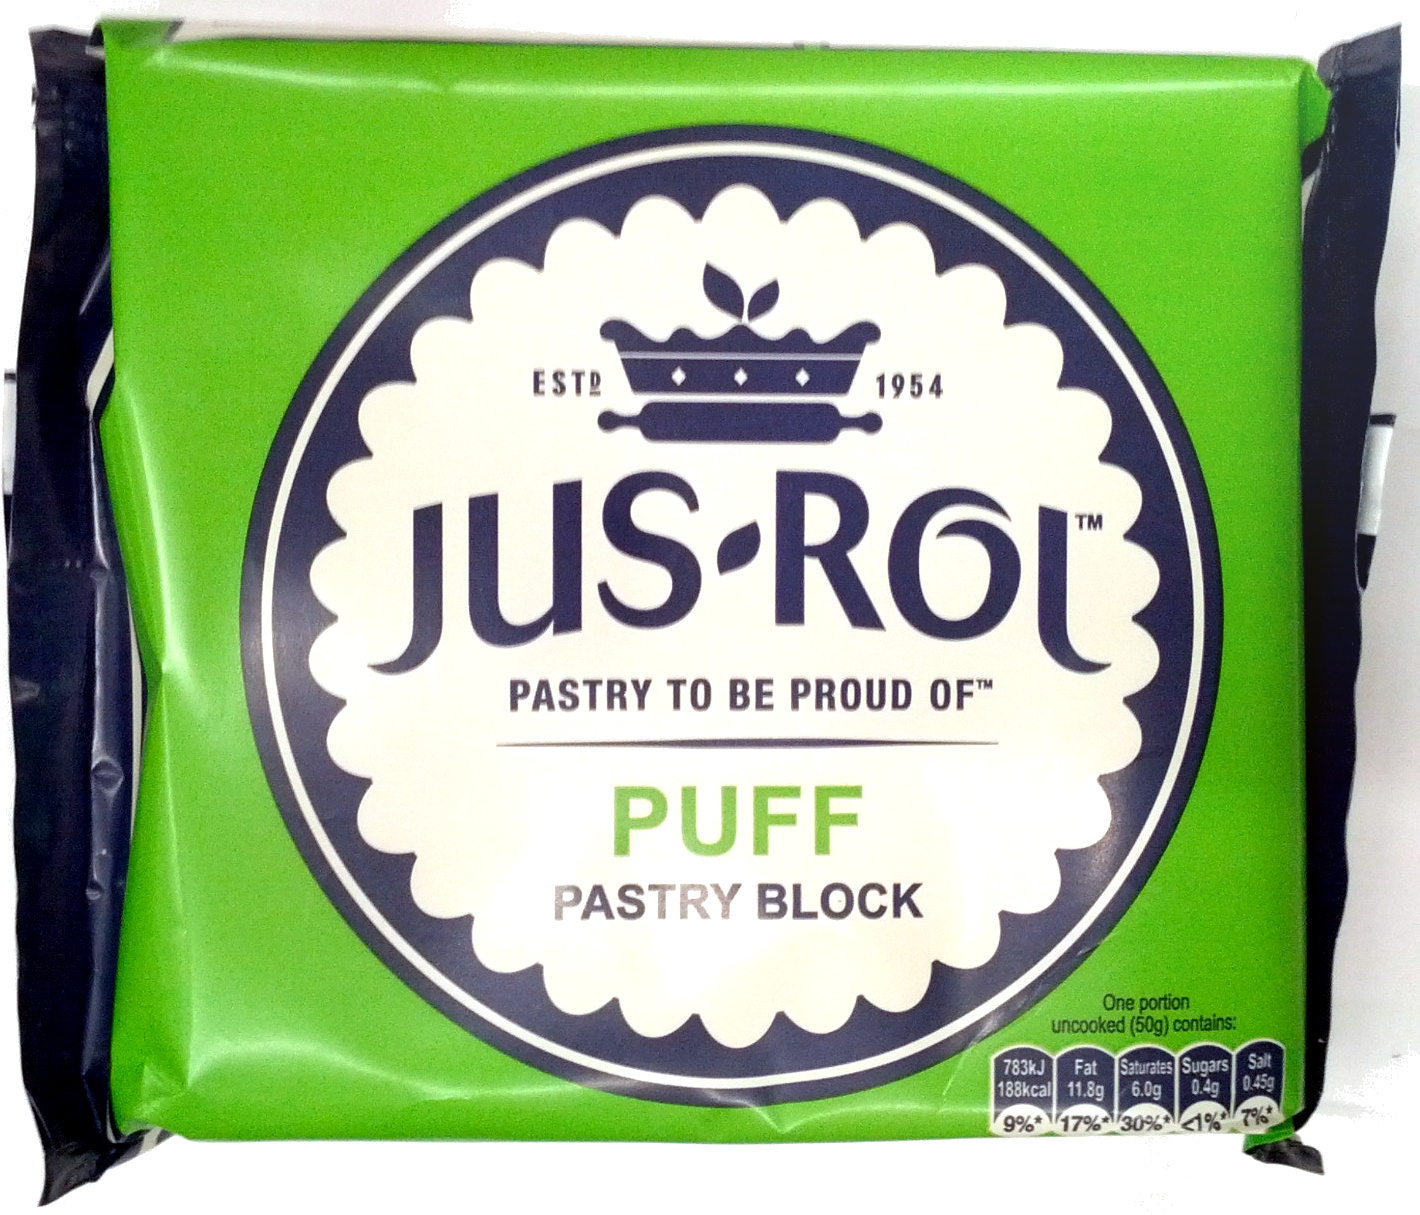 Jus Rol Puff Pastry Block Puff Pastry Block Product